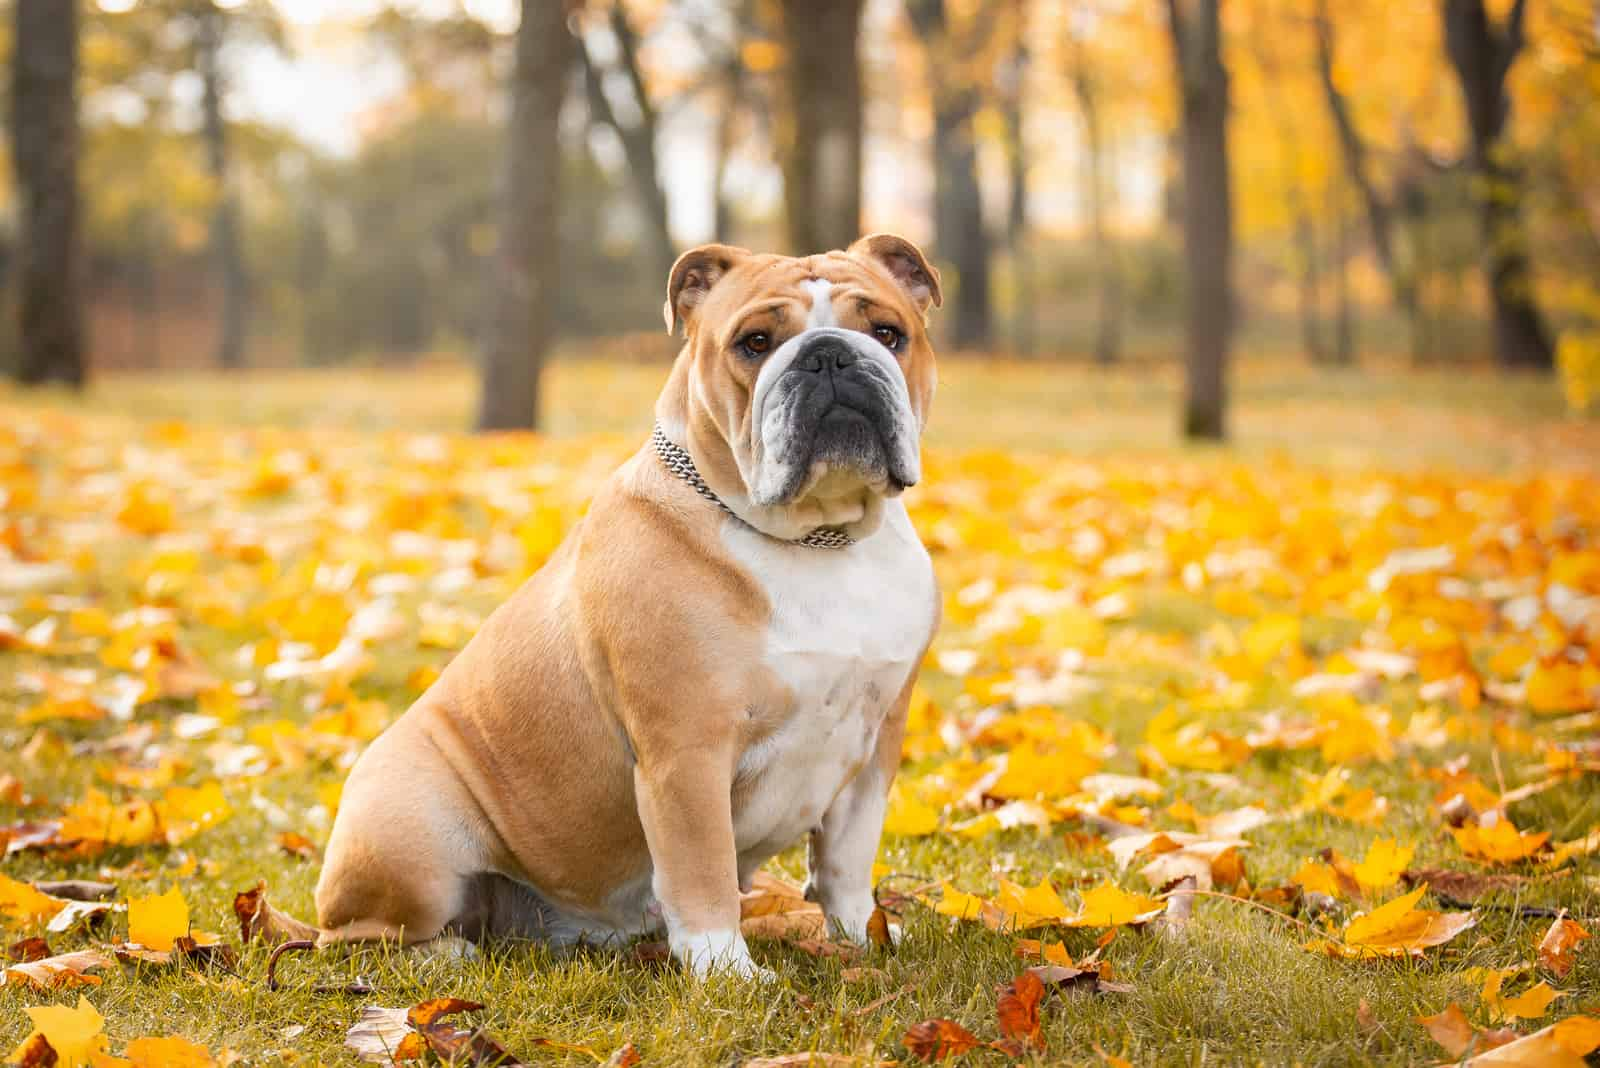 Adorable English bulldog poses in the autumn in the park